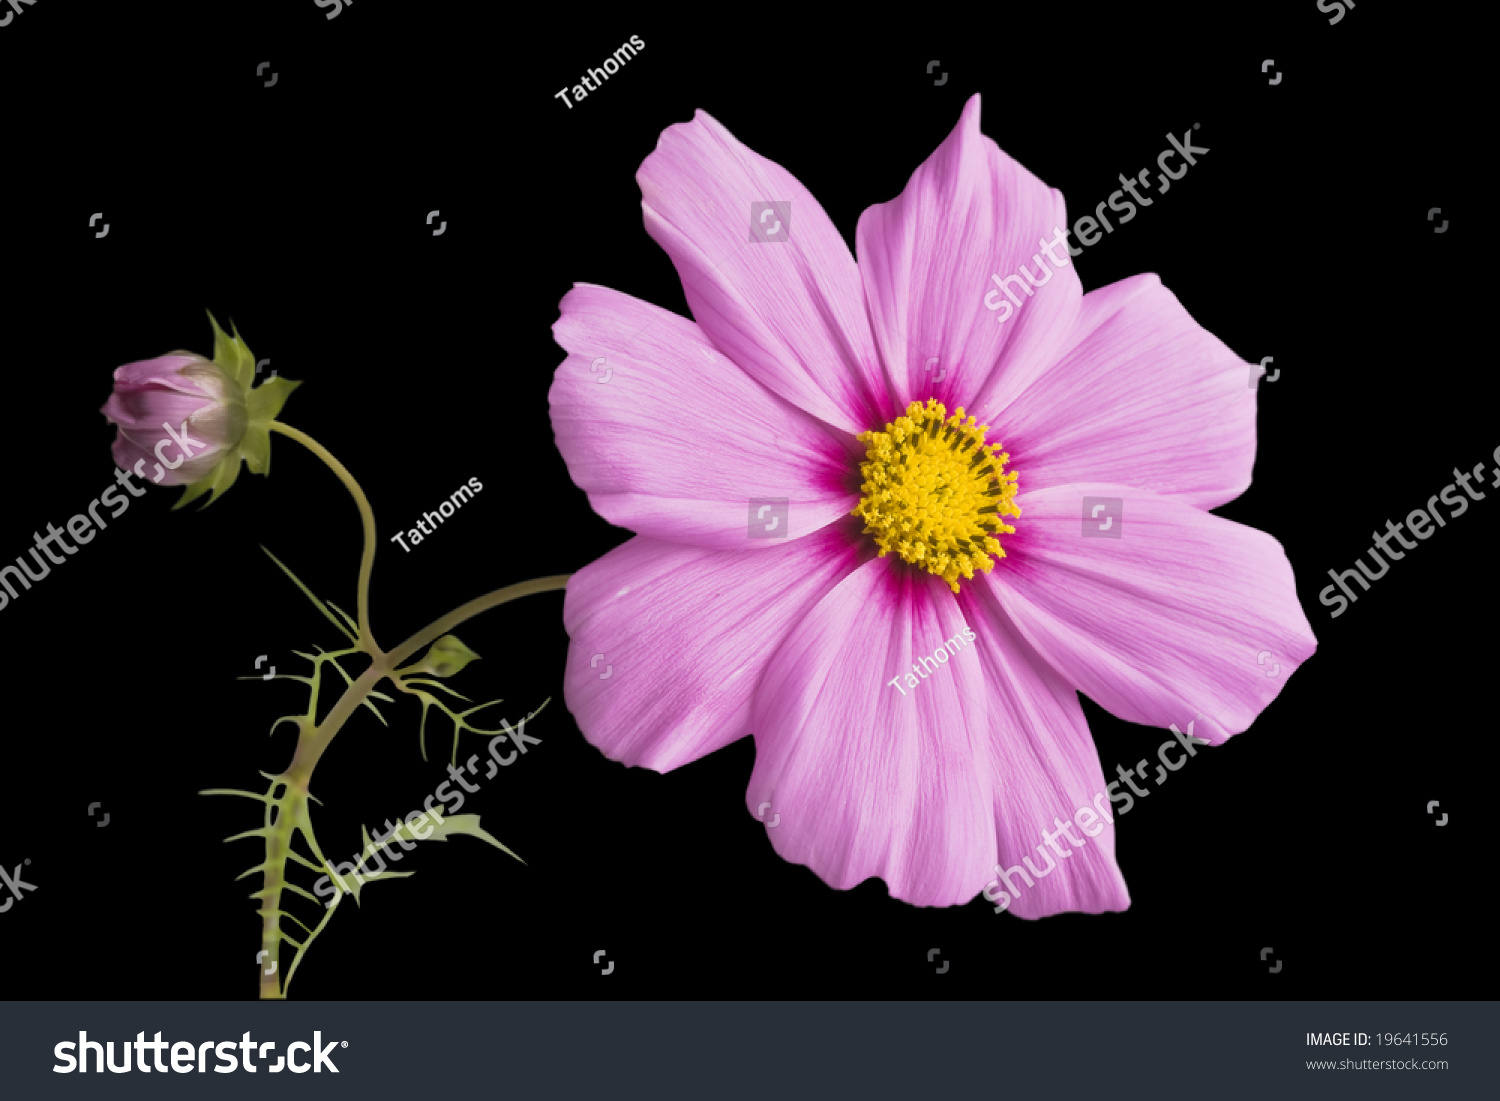 stock-photo-pink-flower-with-bud-on-blac